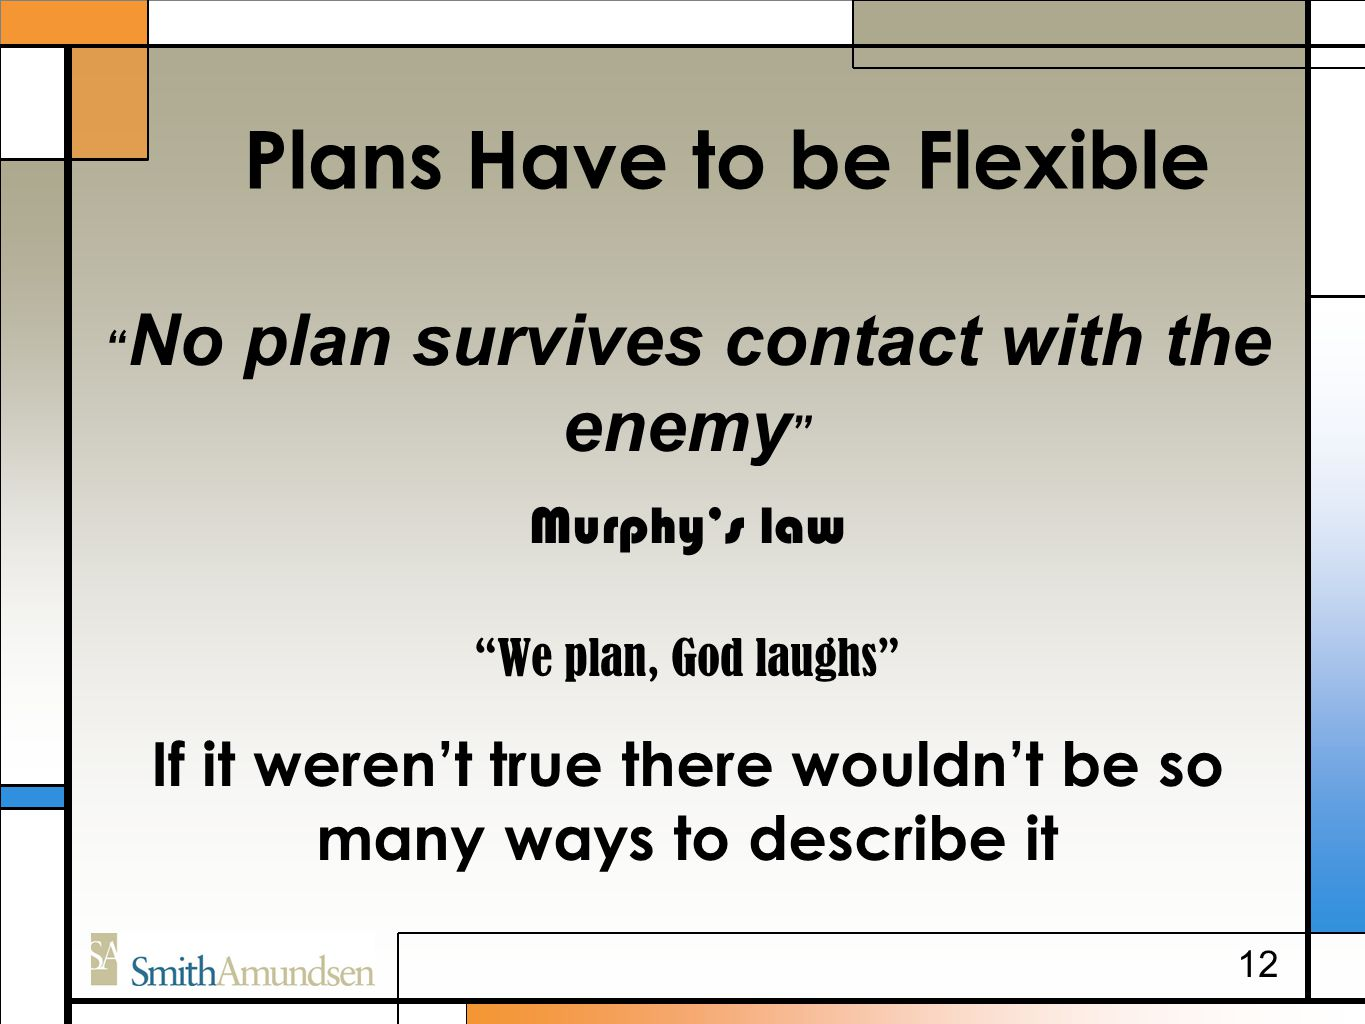 Plans Have to be Flexible No plan survives contact with the enemy Murphy's law We plan, God laughs If it weren't true there wouldn't be so many ways to describe it 12